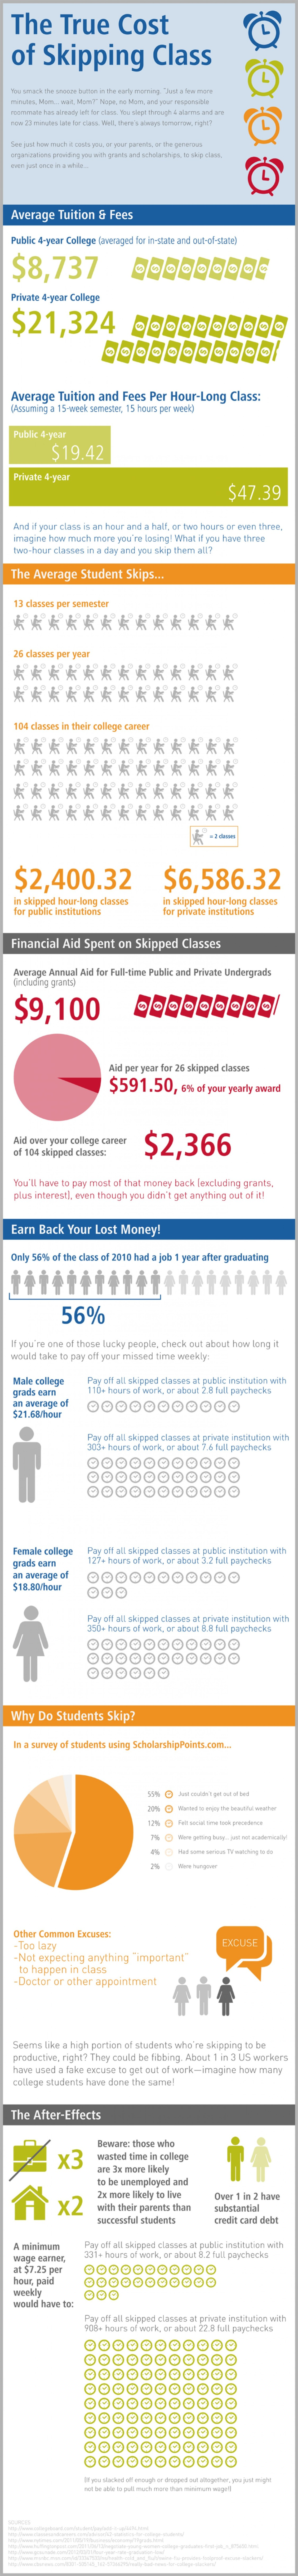 9. The True Cost of Skipping Class